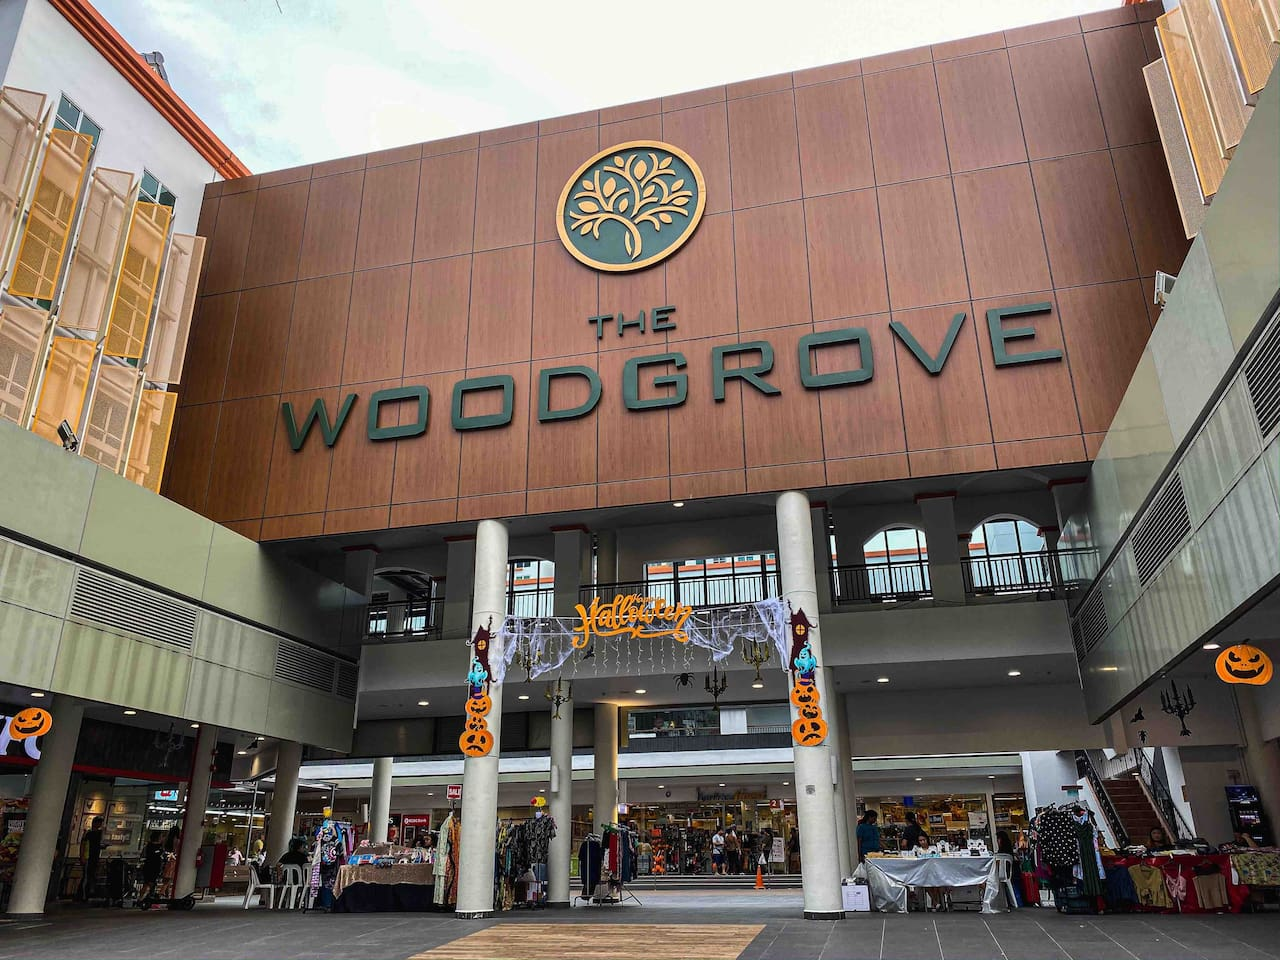 Woodgrove Mall also has a 24-hour supermarket, a 24-hour gymnasium, McDonald's, Kentucky Fried Chicken, Subway, a pet store, retail shops, and an aircon food court.